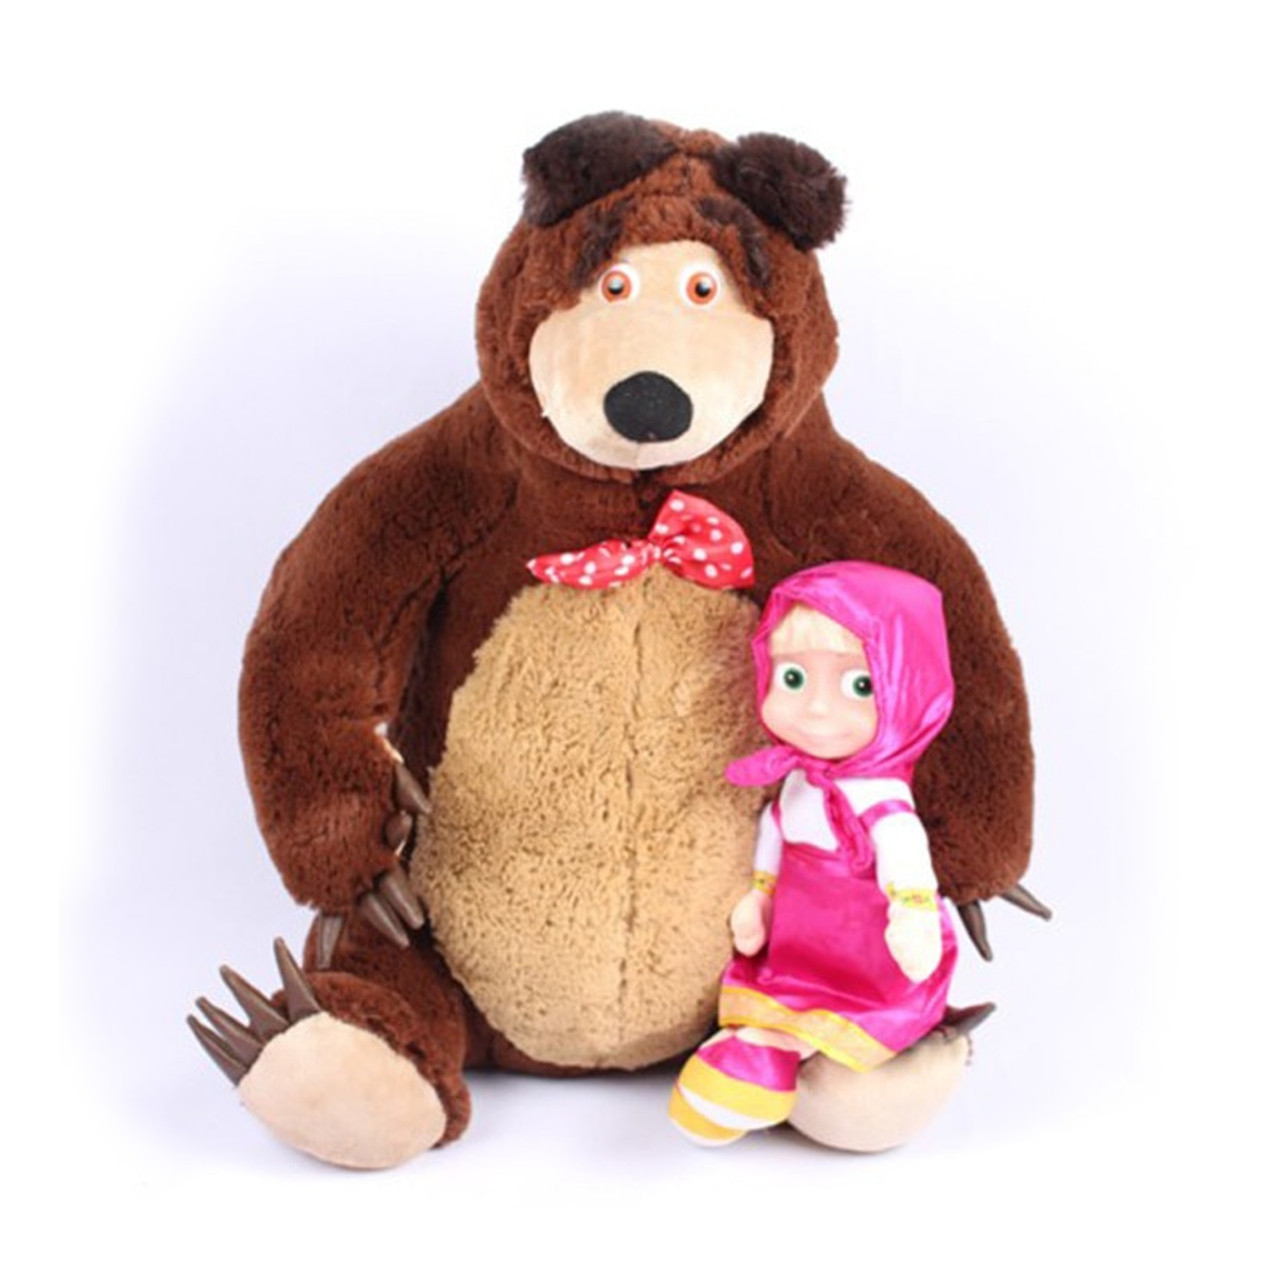 Russian Musical Masha Dolls Bear Plush Stuffed Toys And The Brand Educational For Boys Girls Birthday Christmas New Year Gifts